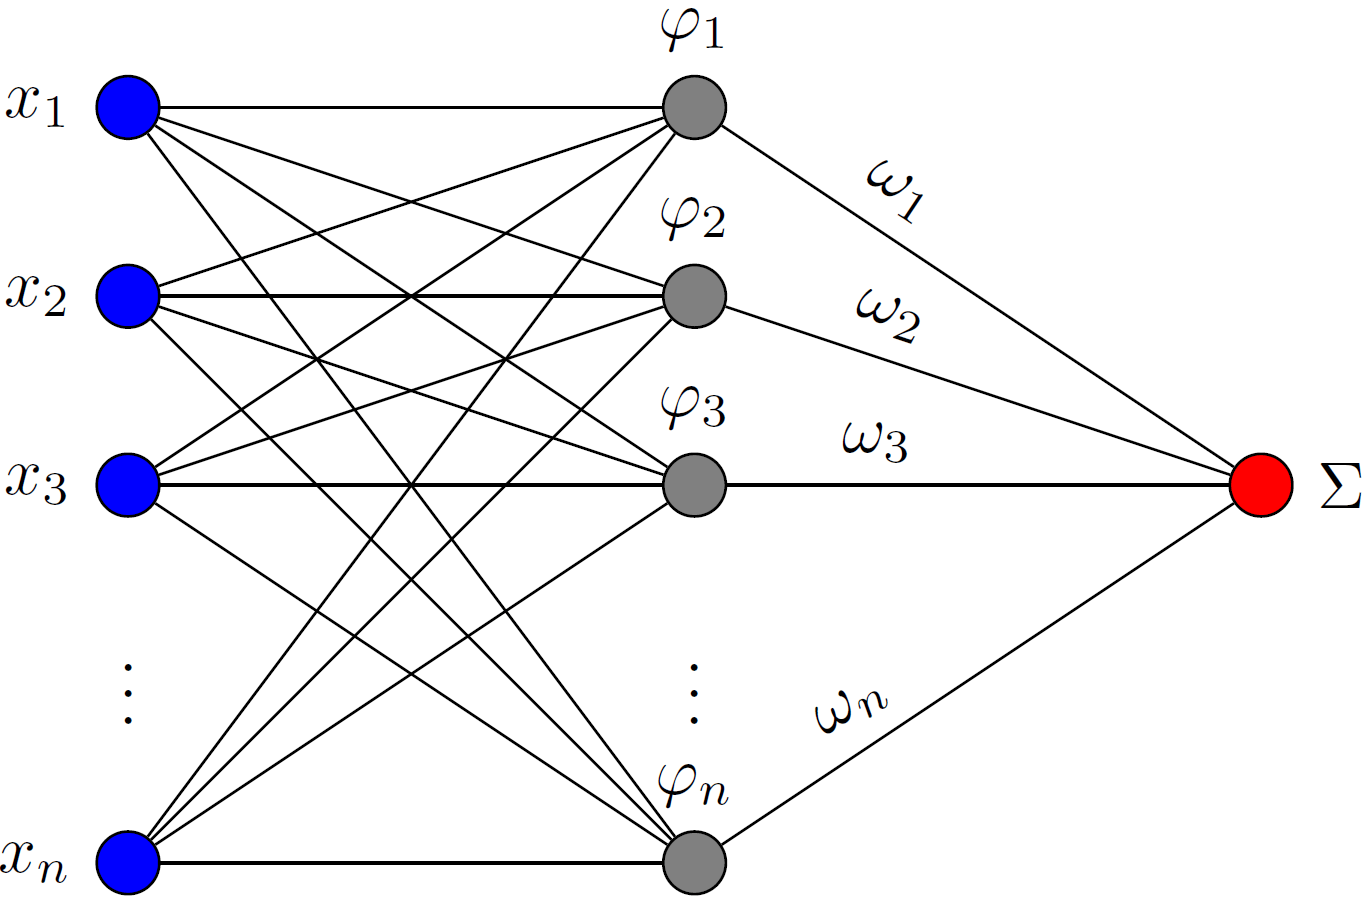 Latex Neural Network Diagram